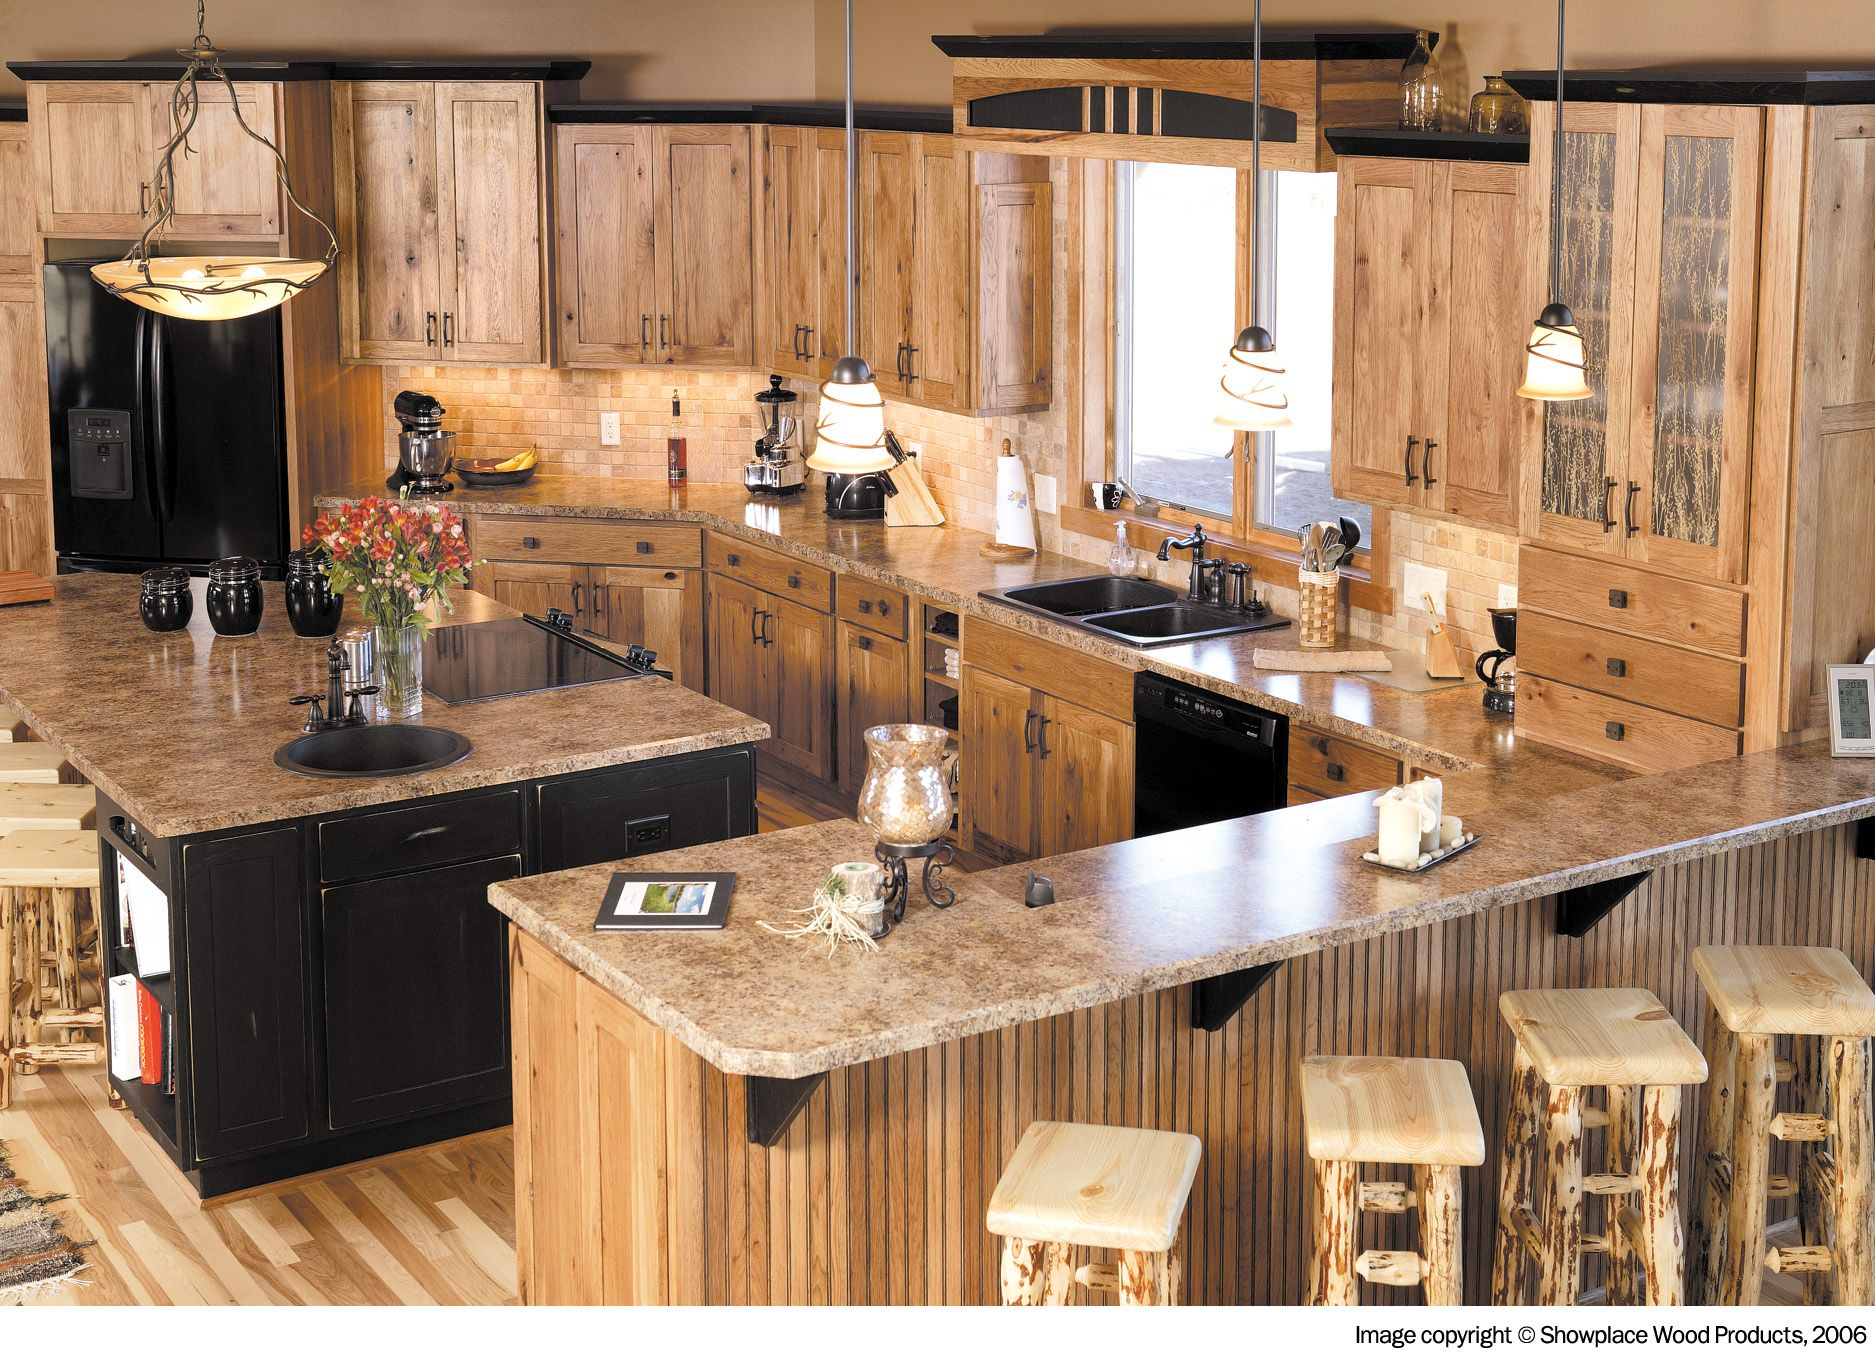 wi house kitchen rustic kitchen cabinets Rustic Kitchen For Country Kitchen Styles Brilliant Hickory Cabinets